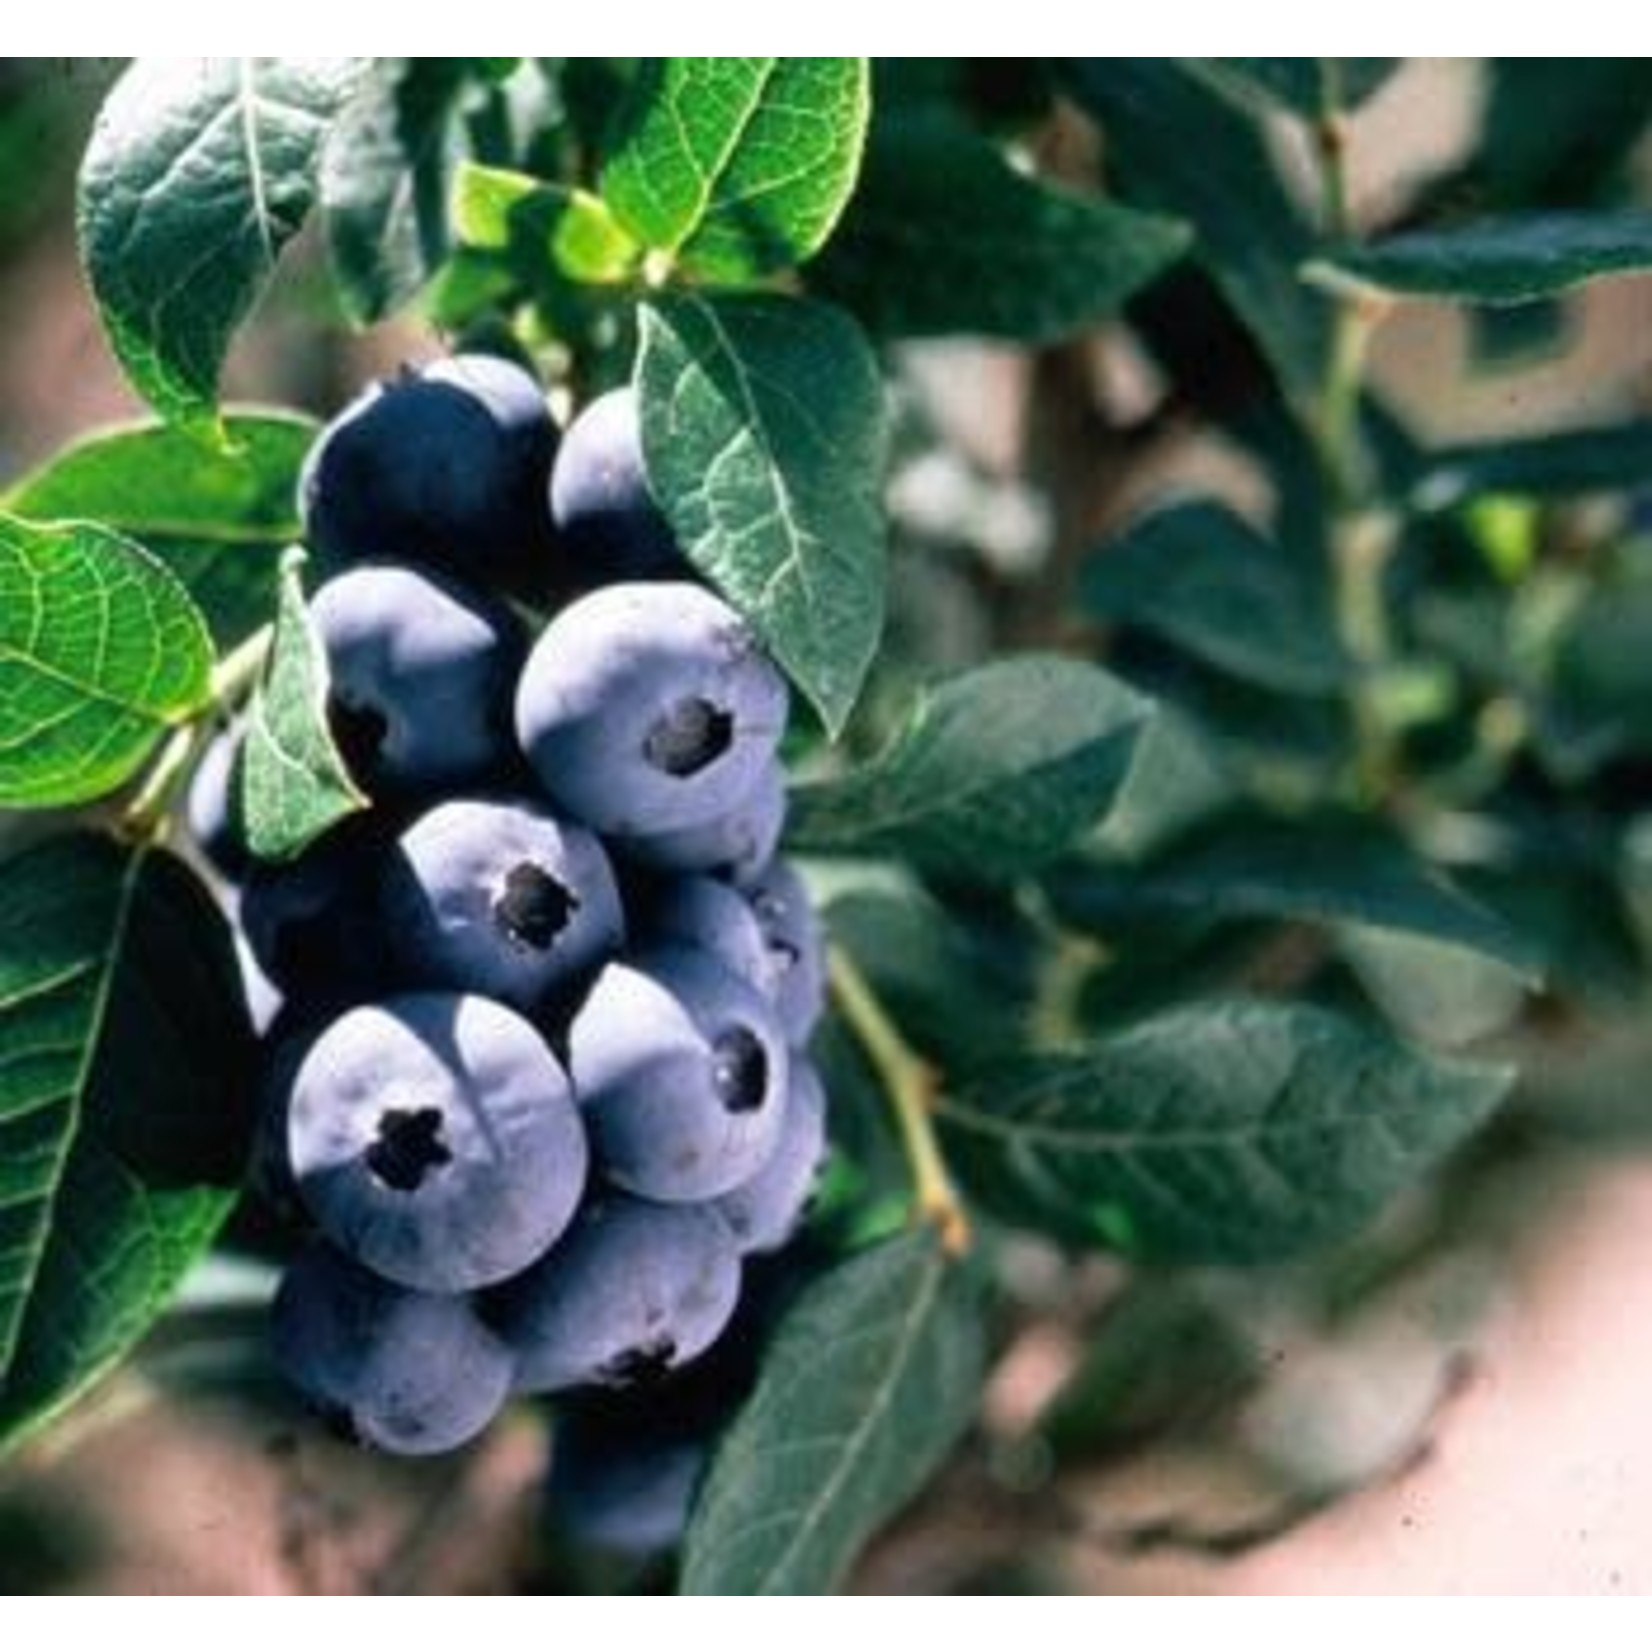 Blueberry - Vaccinium 'Chippewa' - 2 gal